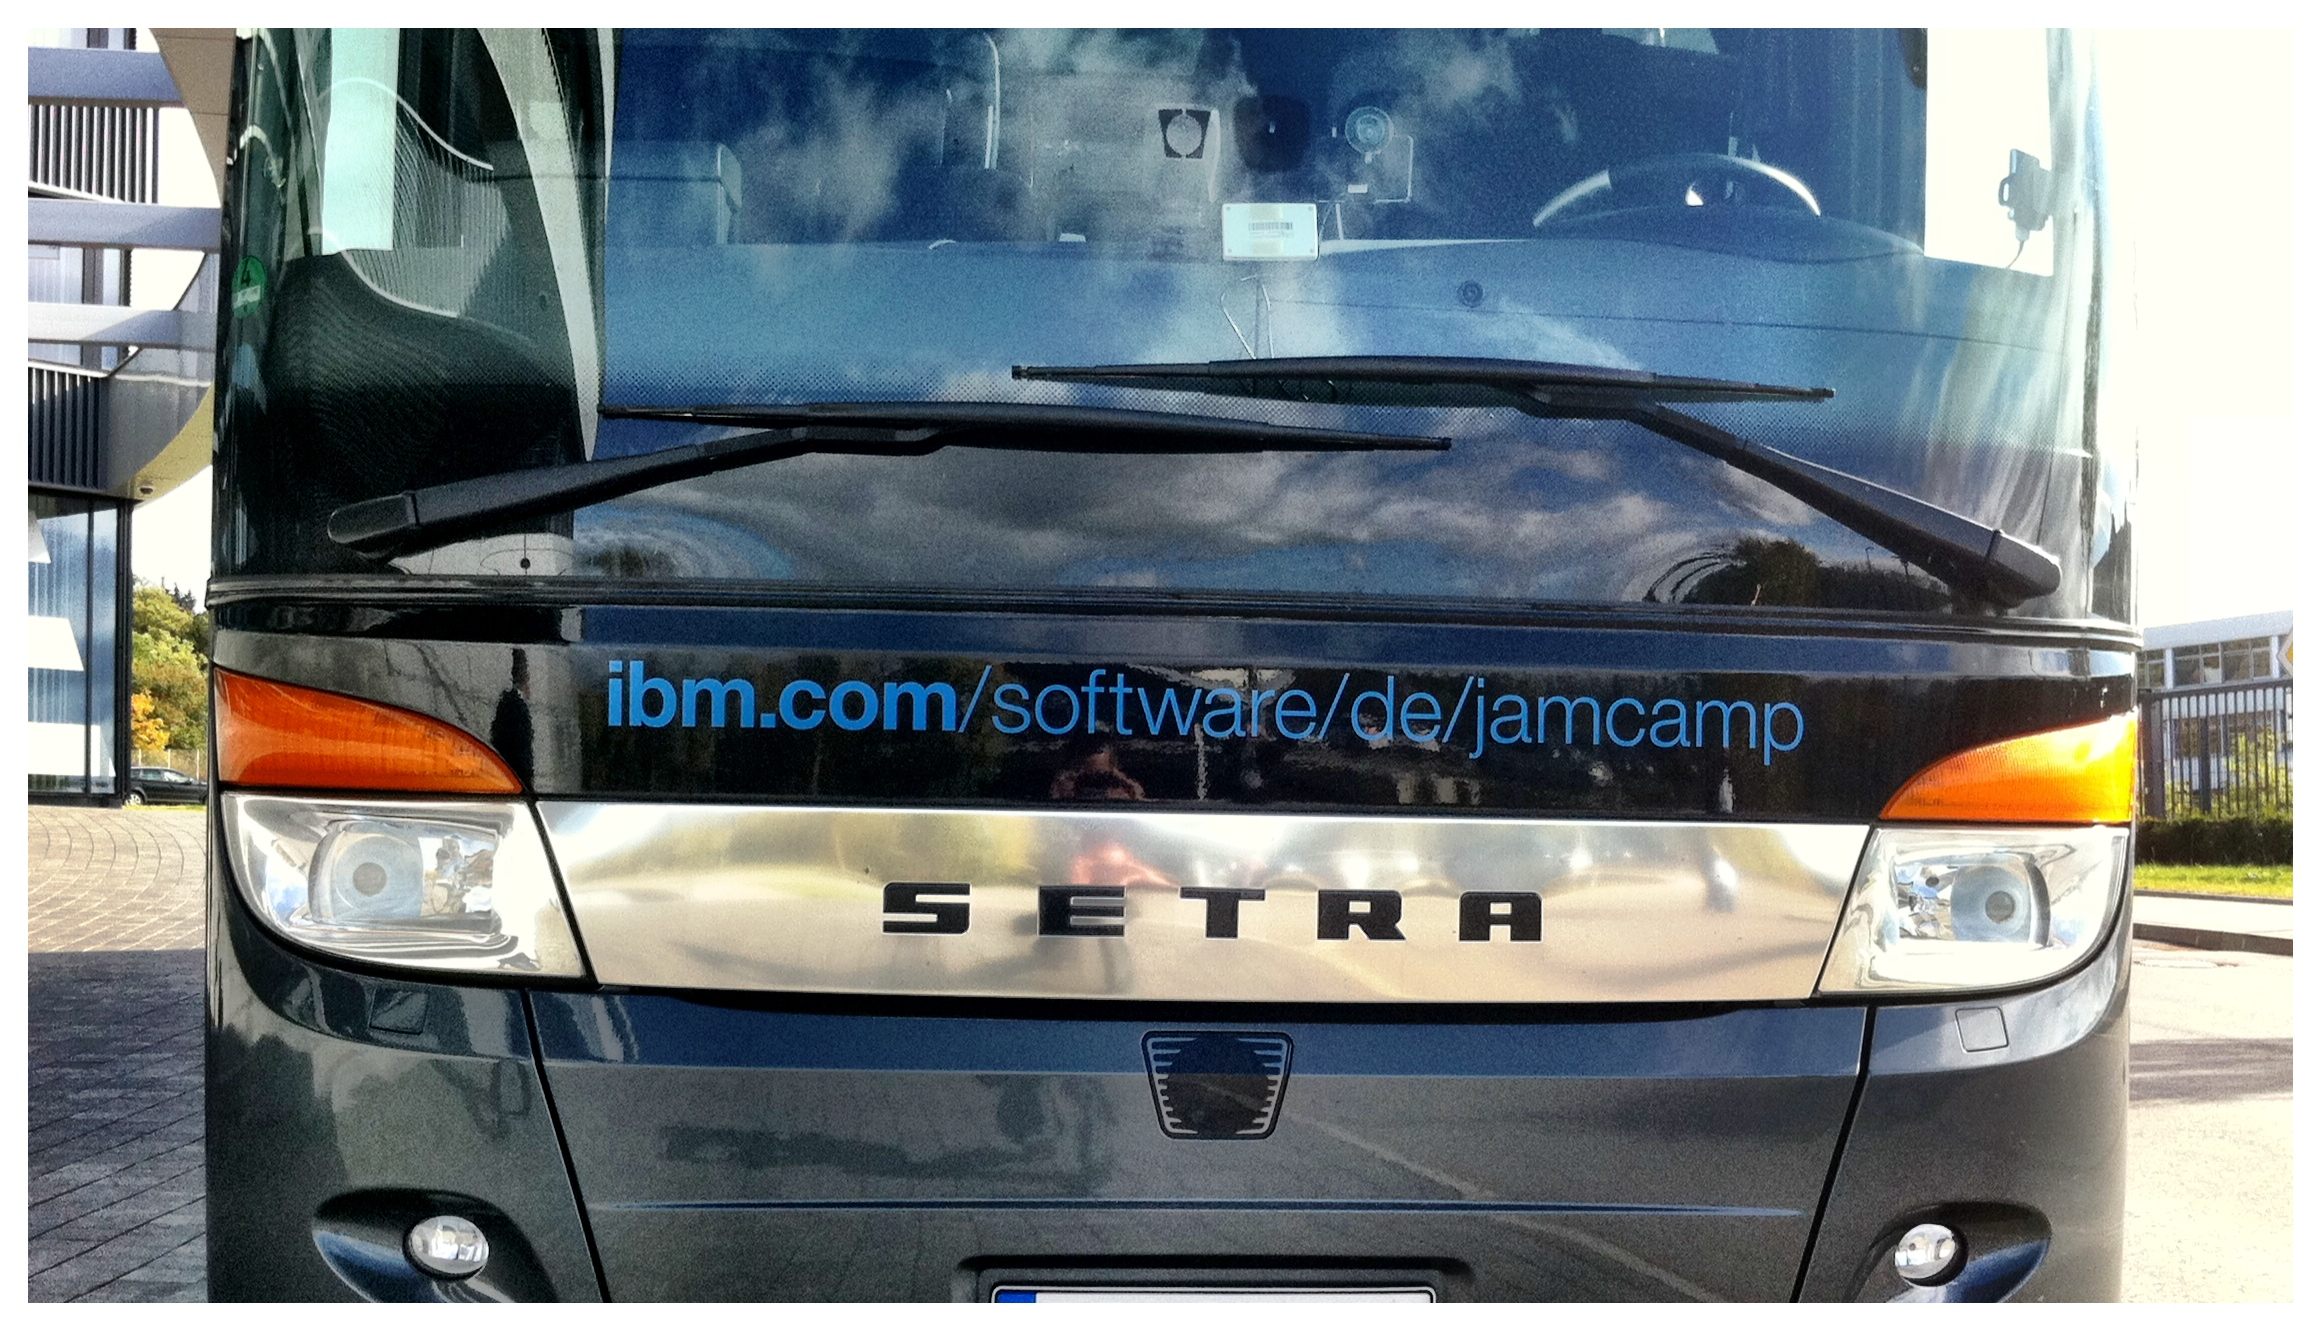 IBM Social Business JamCamp Bustour (3)